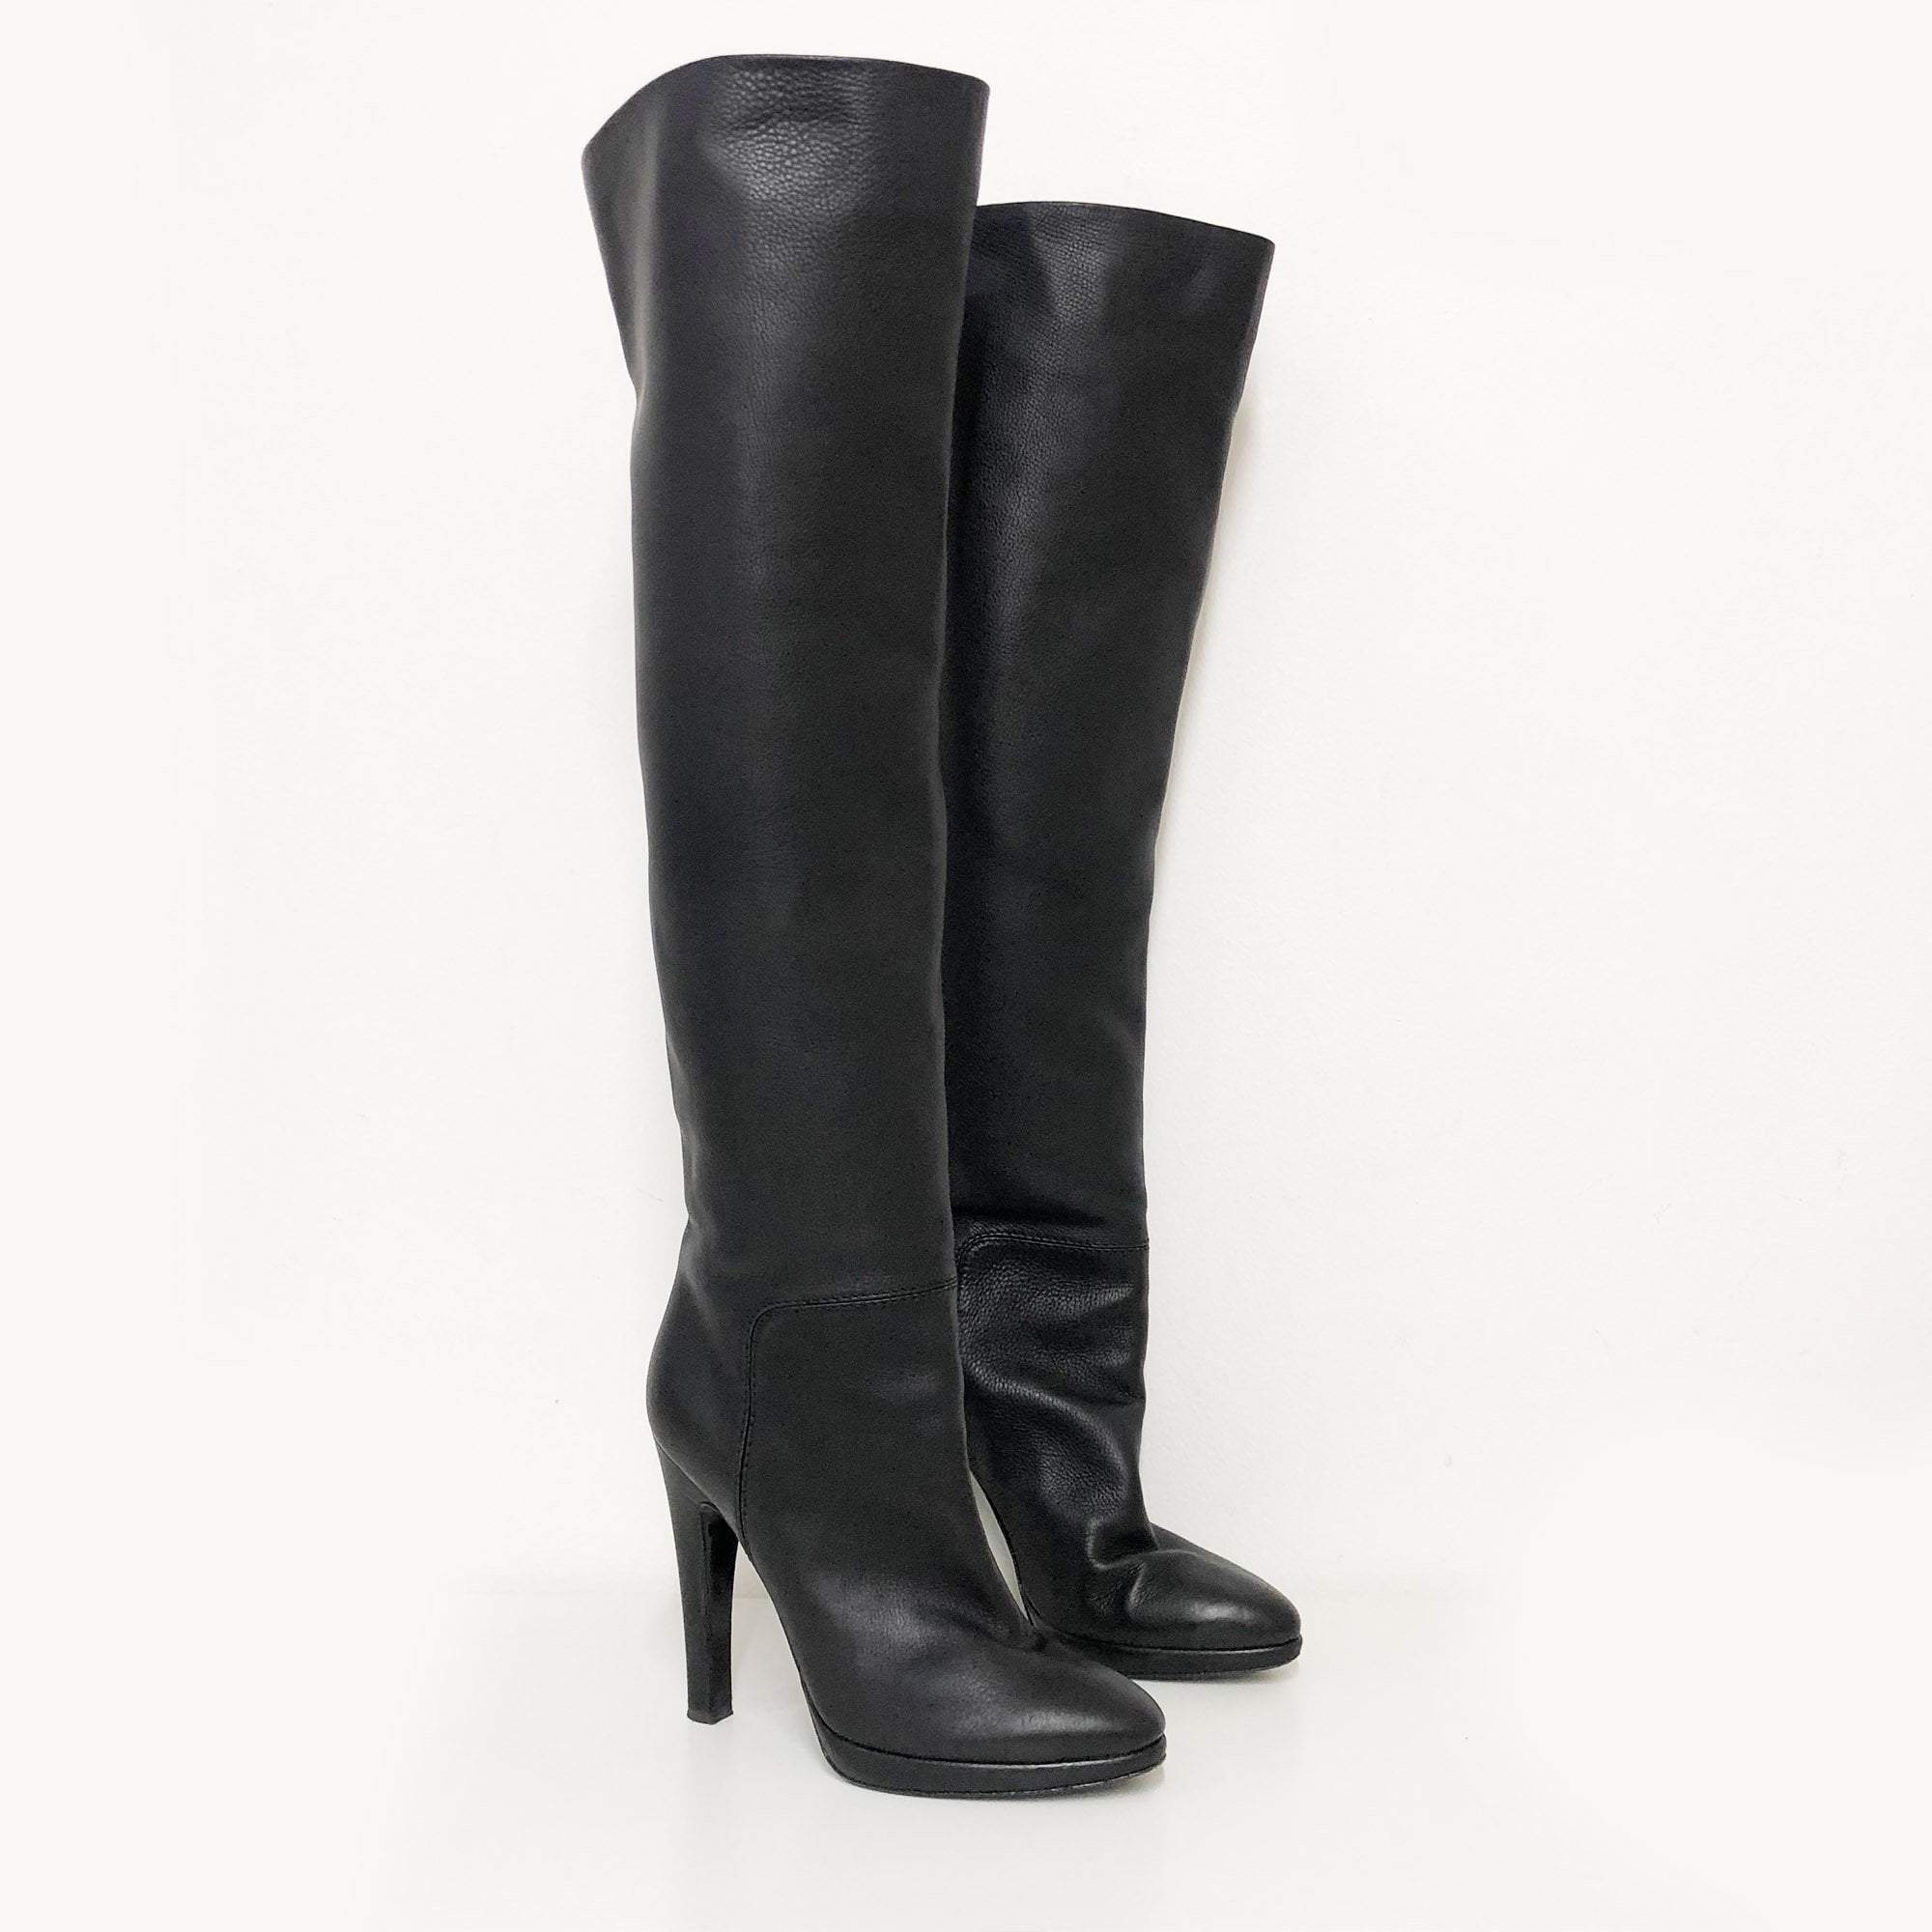 Giuseppe Zanotti Black Leather Knee High Heeled Boots